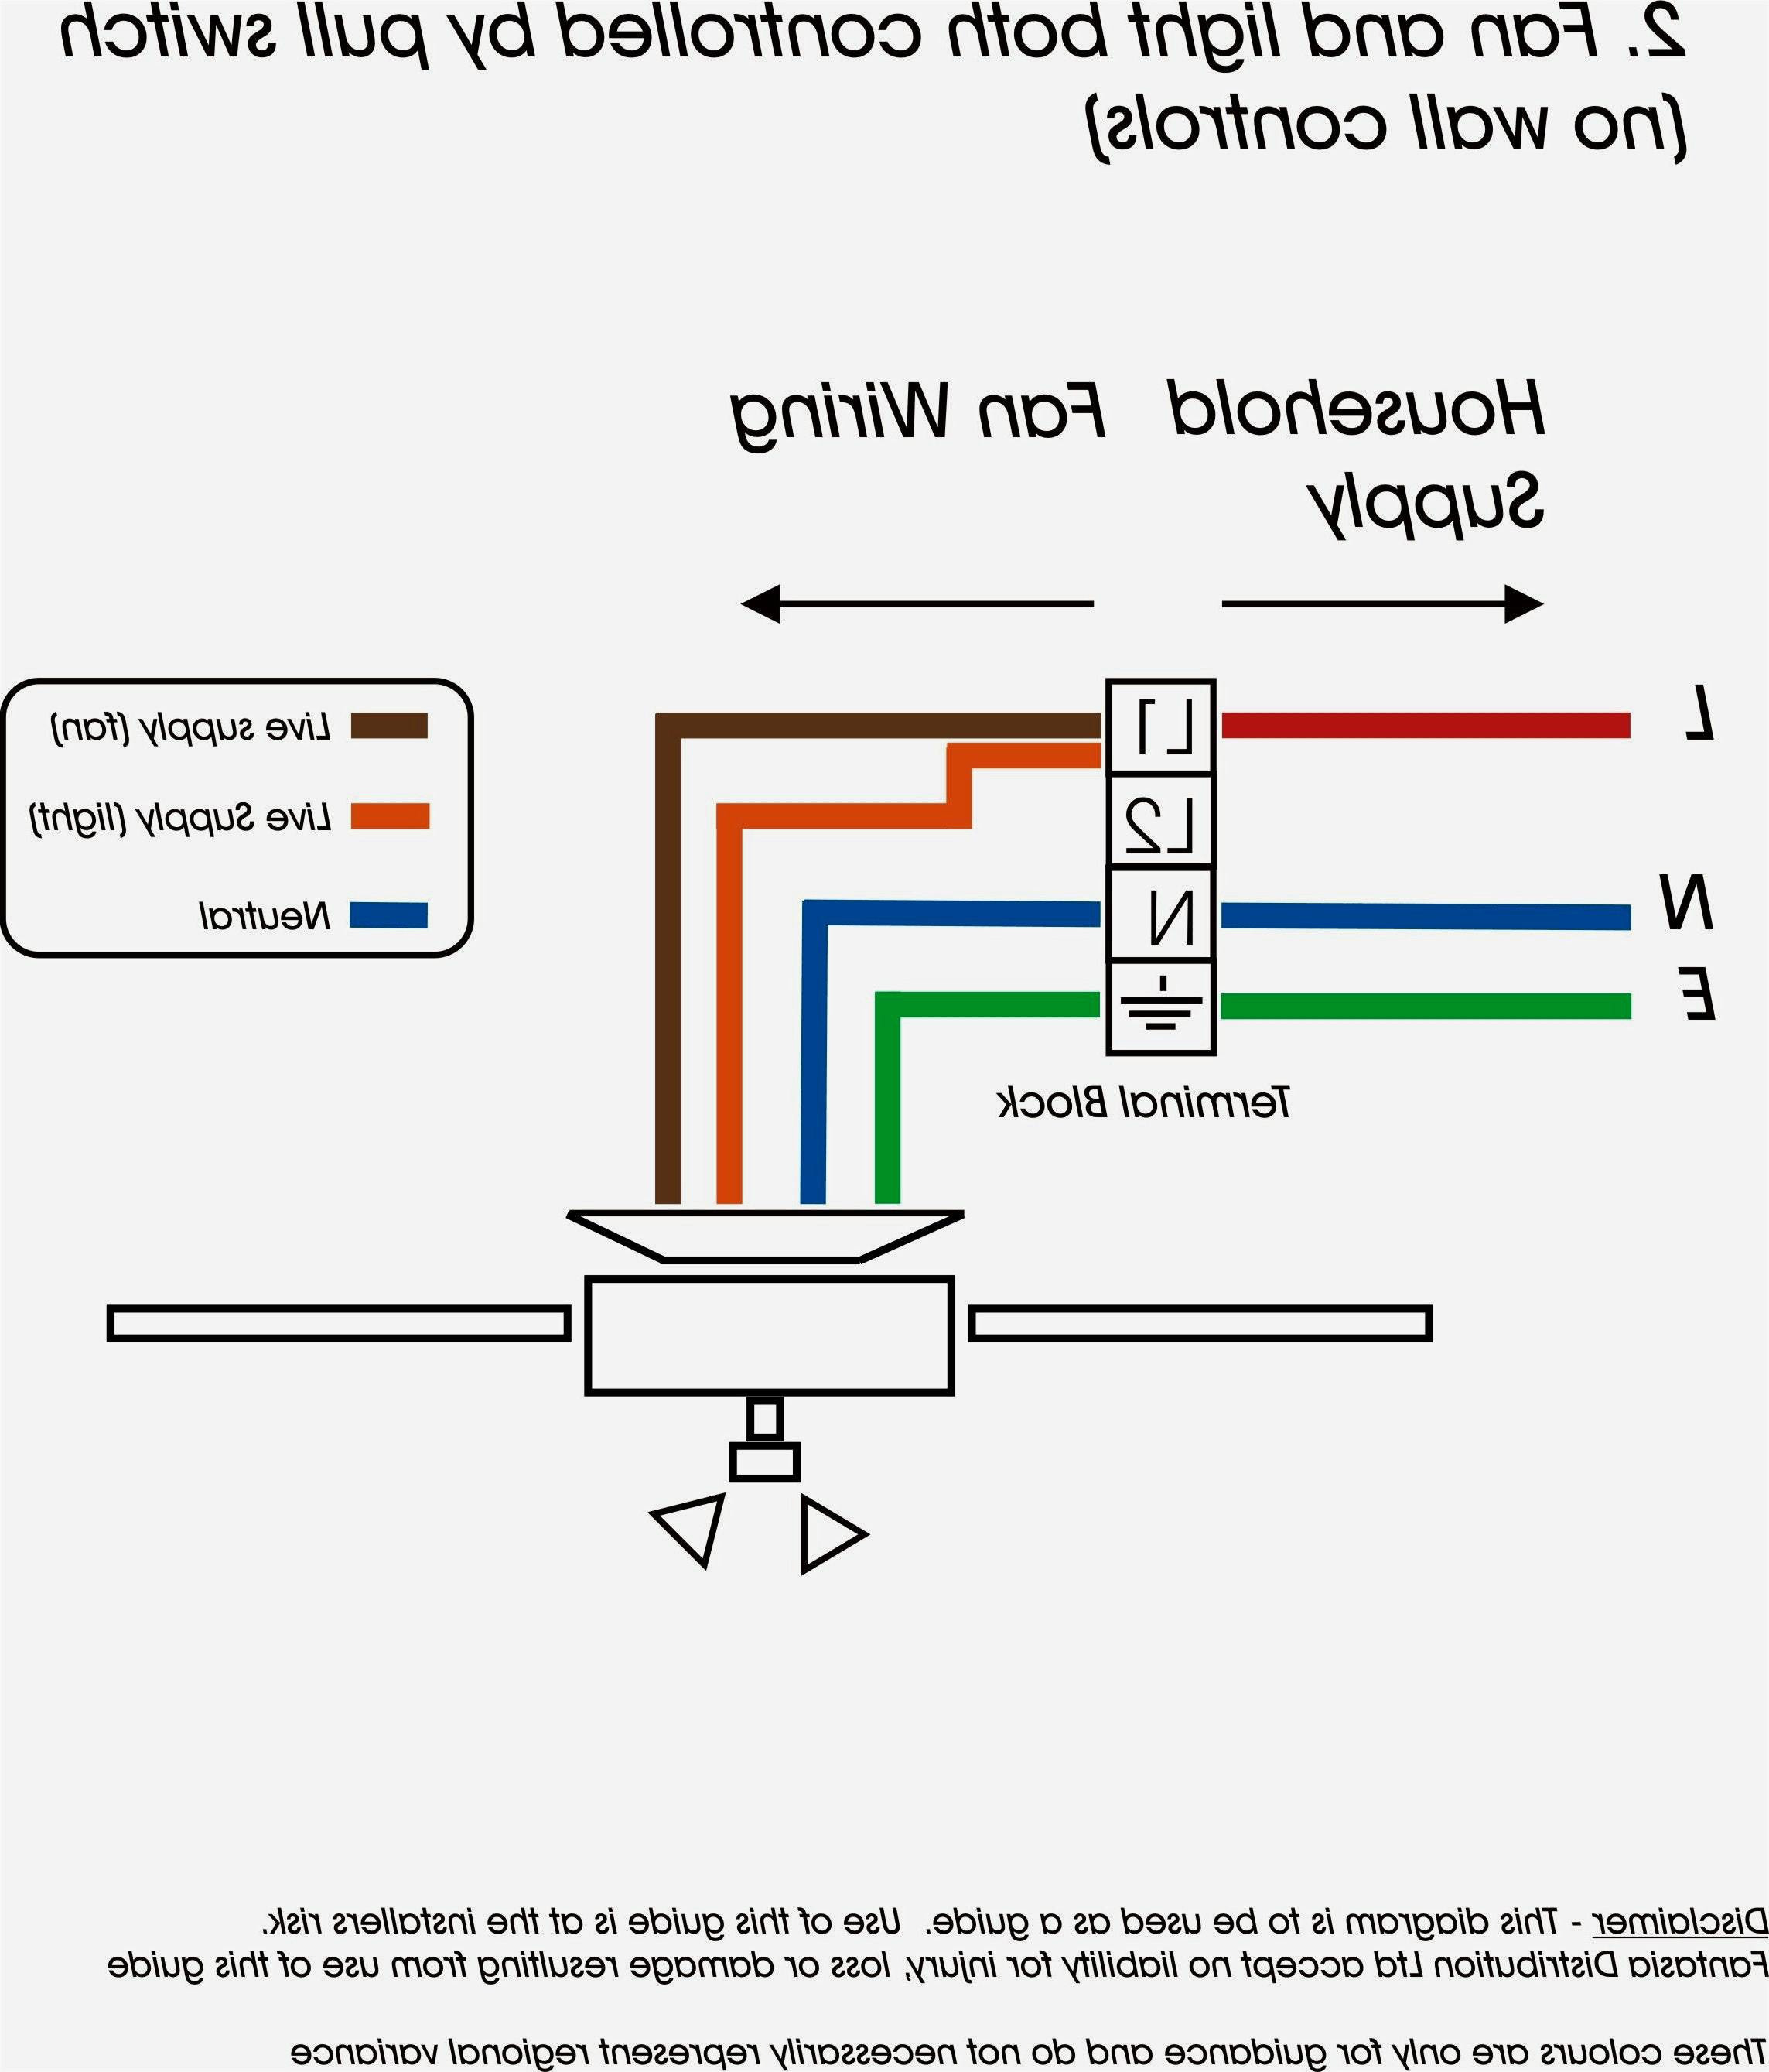 Magnetic Switch Wiring Diagram - Reed Relay Wiring Diagram Fresh Wiring Diagram for A Relay to A Switch Inspirationa 5 Pin Relay 18d